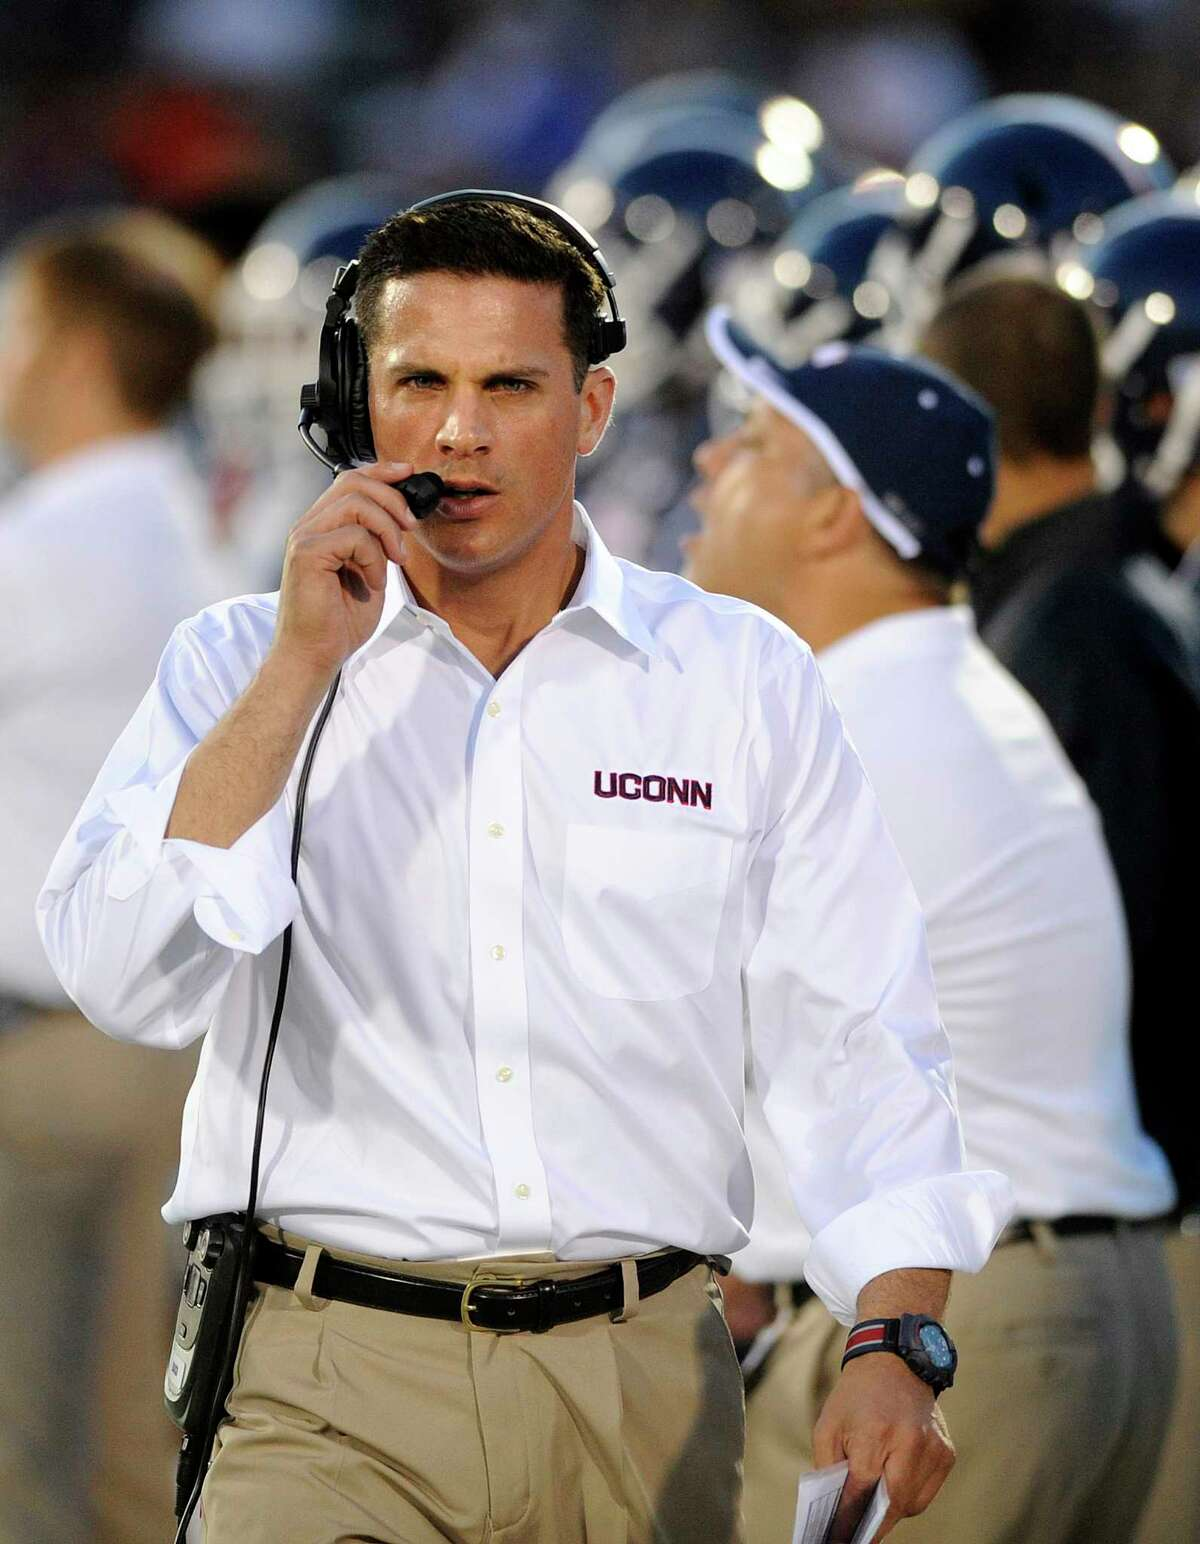 UConn head coach Bob Diaco looks on during the first half of the Huskies' 35-10 loss on Friday night at Rentschler Field in East Hartford.